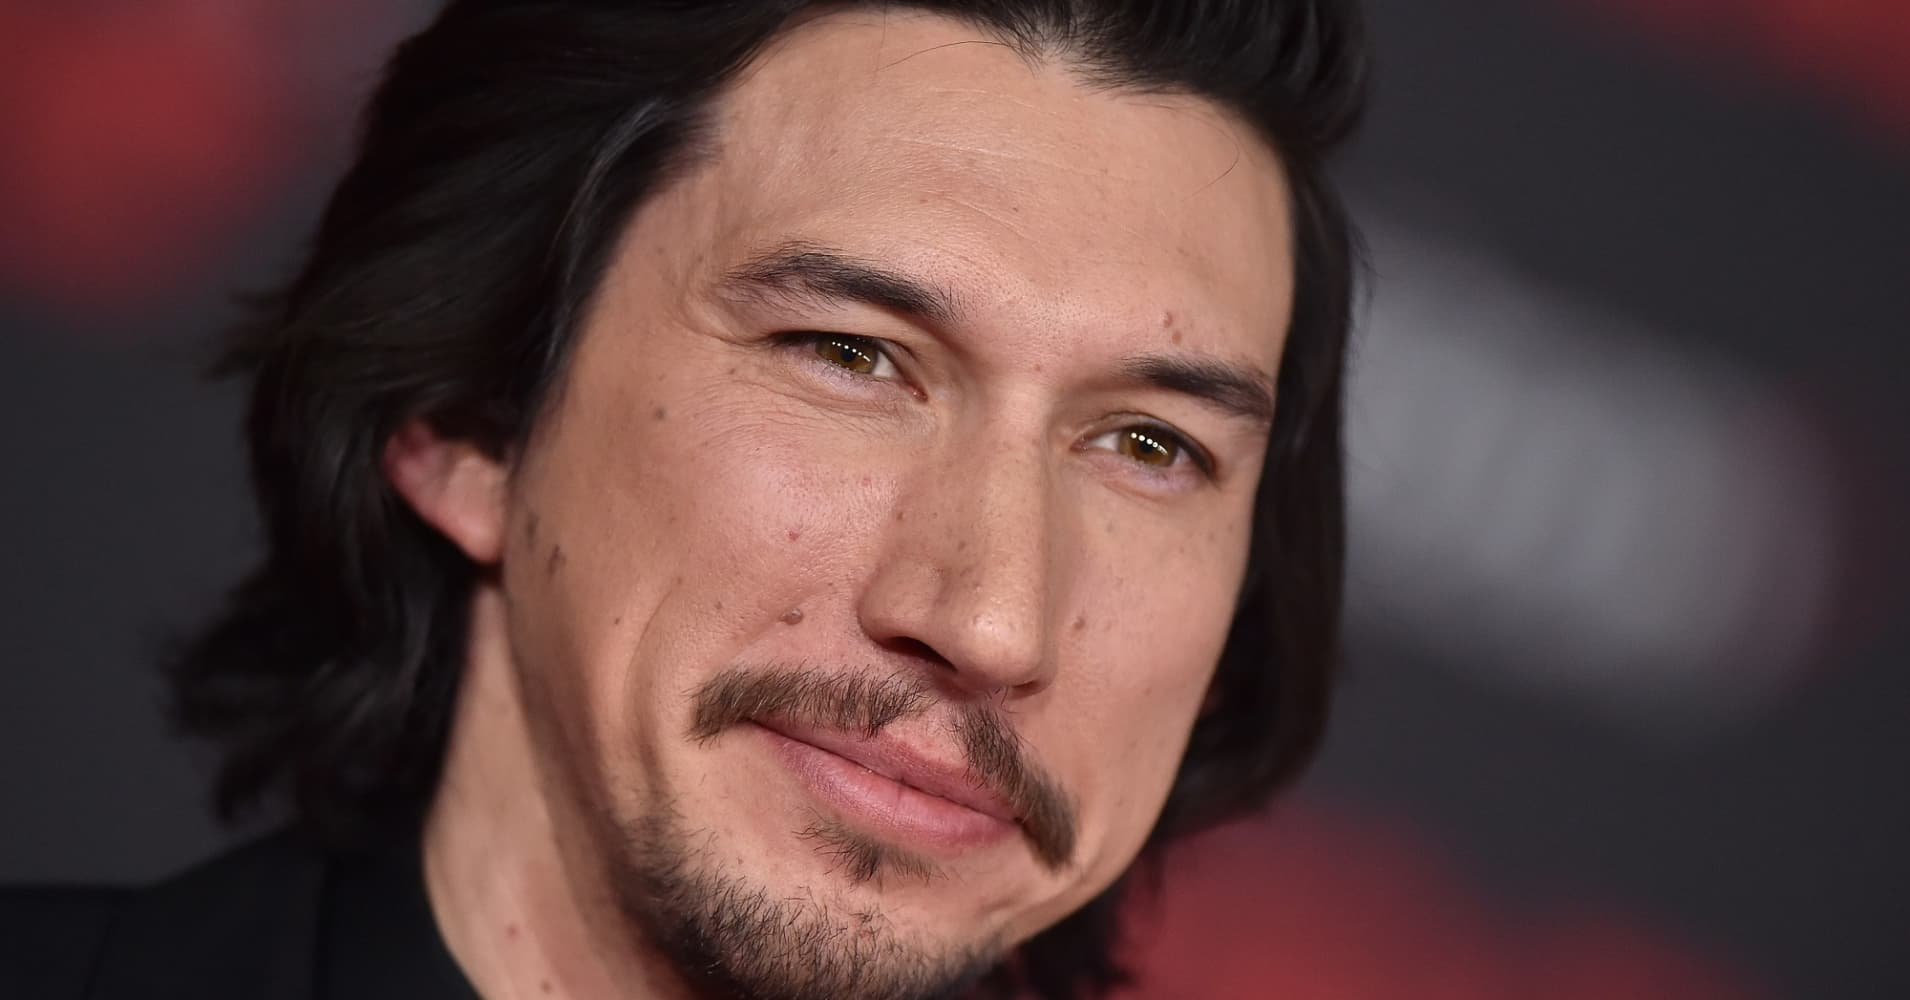 Actor Adam Driver attends the Los Angeles premiere of 'Star Wars: The Last Jedi' at The Shrine Auditorium on December 9, 2017 in Los Angeles, California.